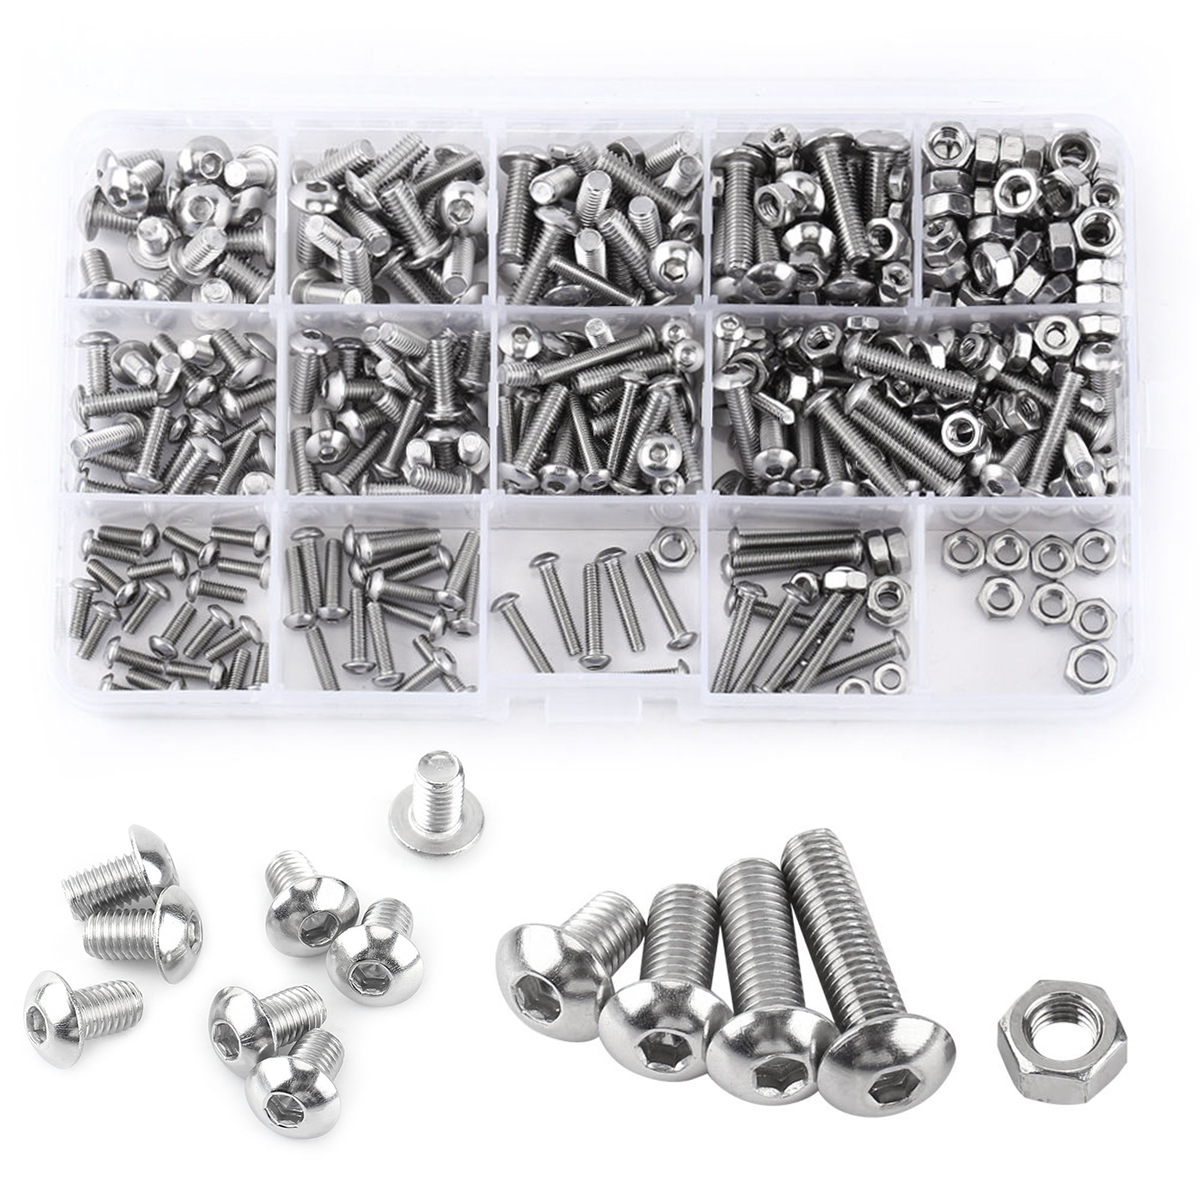 Mayitr 440pcs Stainless Steel Hex Socket Screws Nuts Button Head  M3 M4 M5 Bolts Assortment Kit For Hardware Accessories infinity cube new style spinner fidget high quality anti stress mano metal kids finger toys luxury hot adult edc for adhd gifts